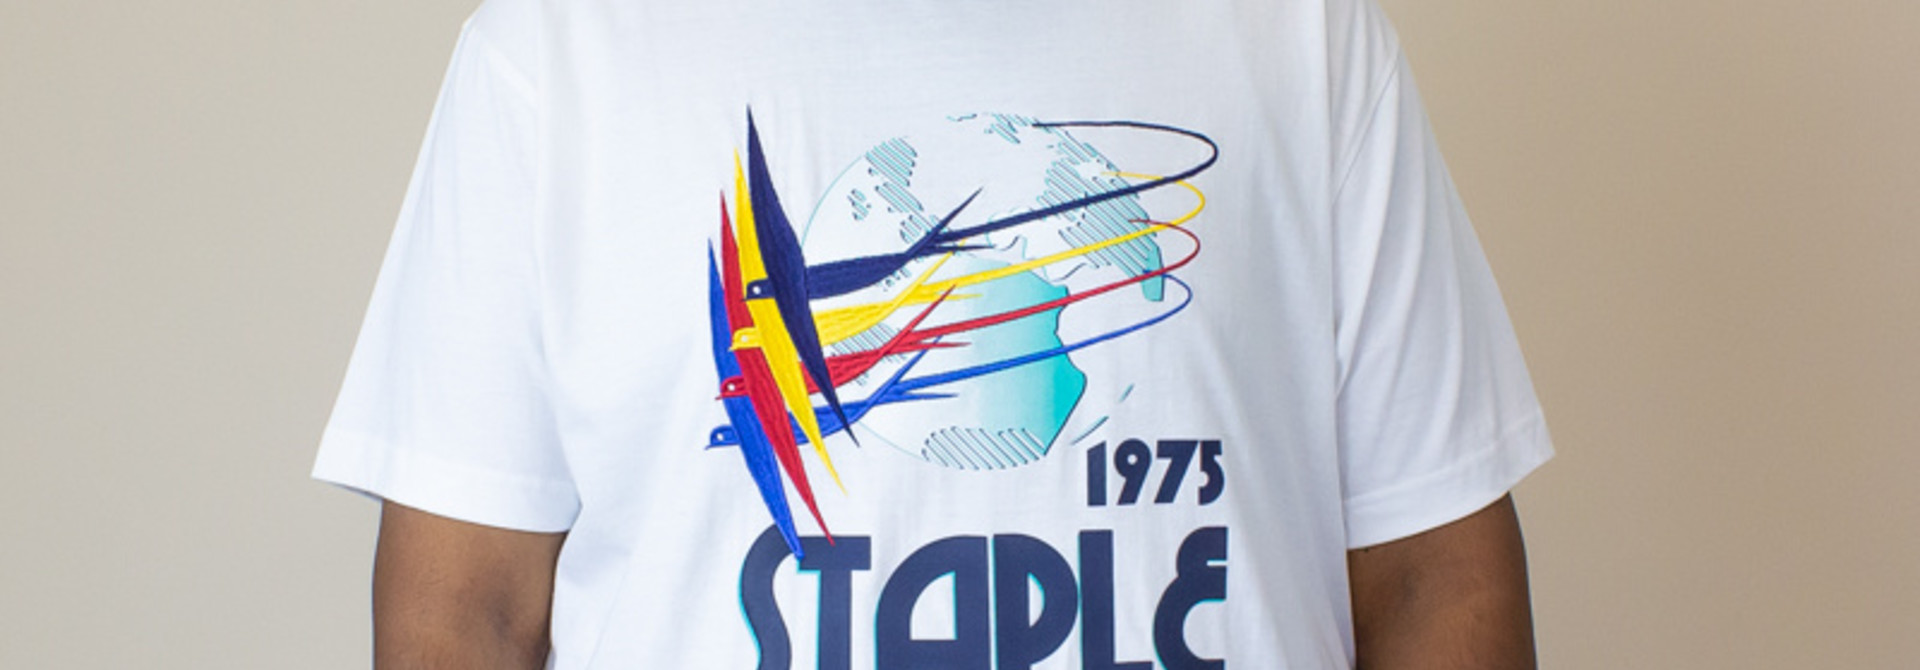 Staple Grand Prix Intro Shirt - White